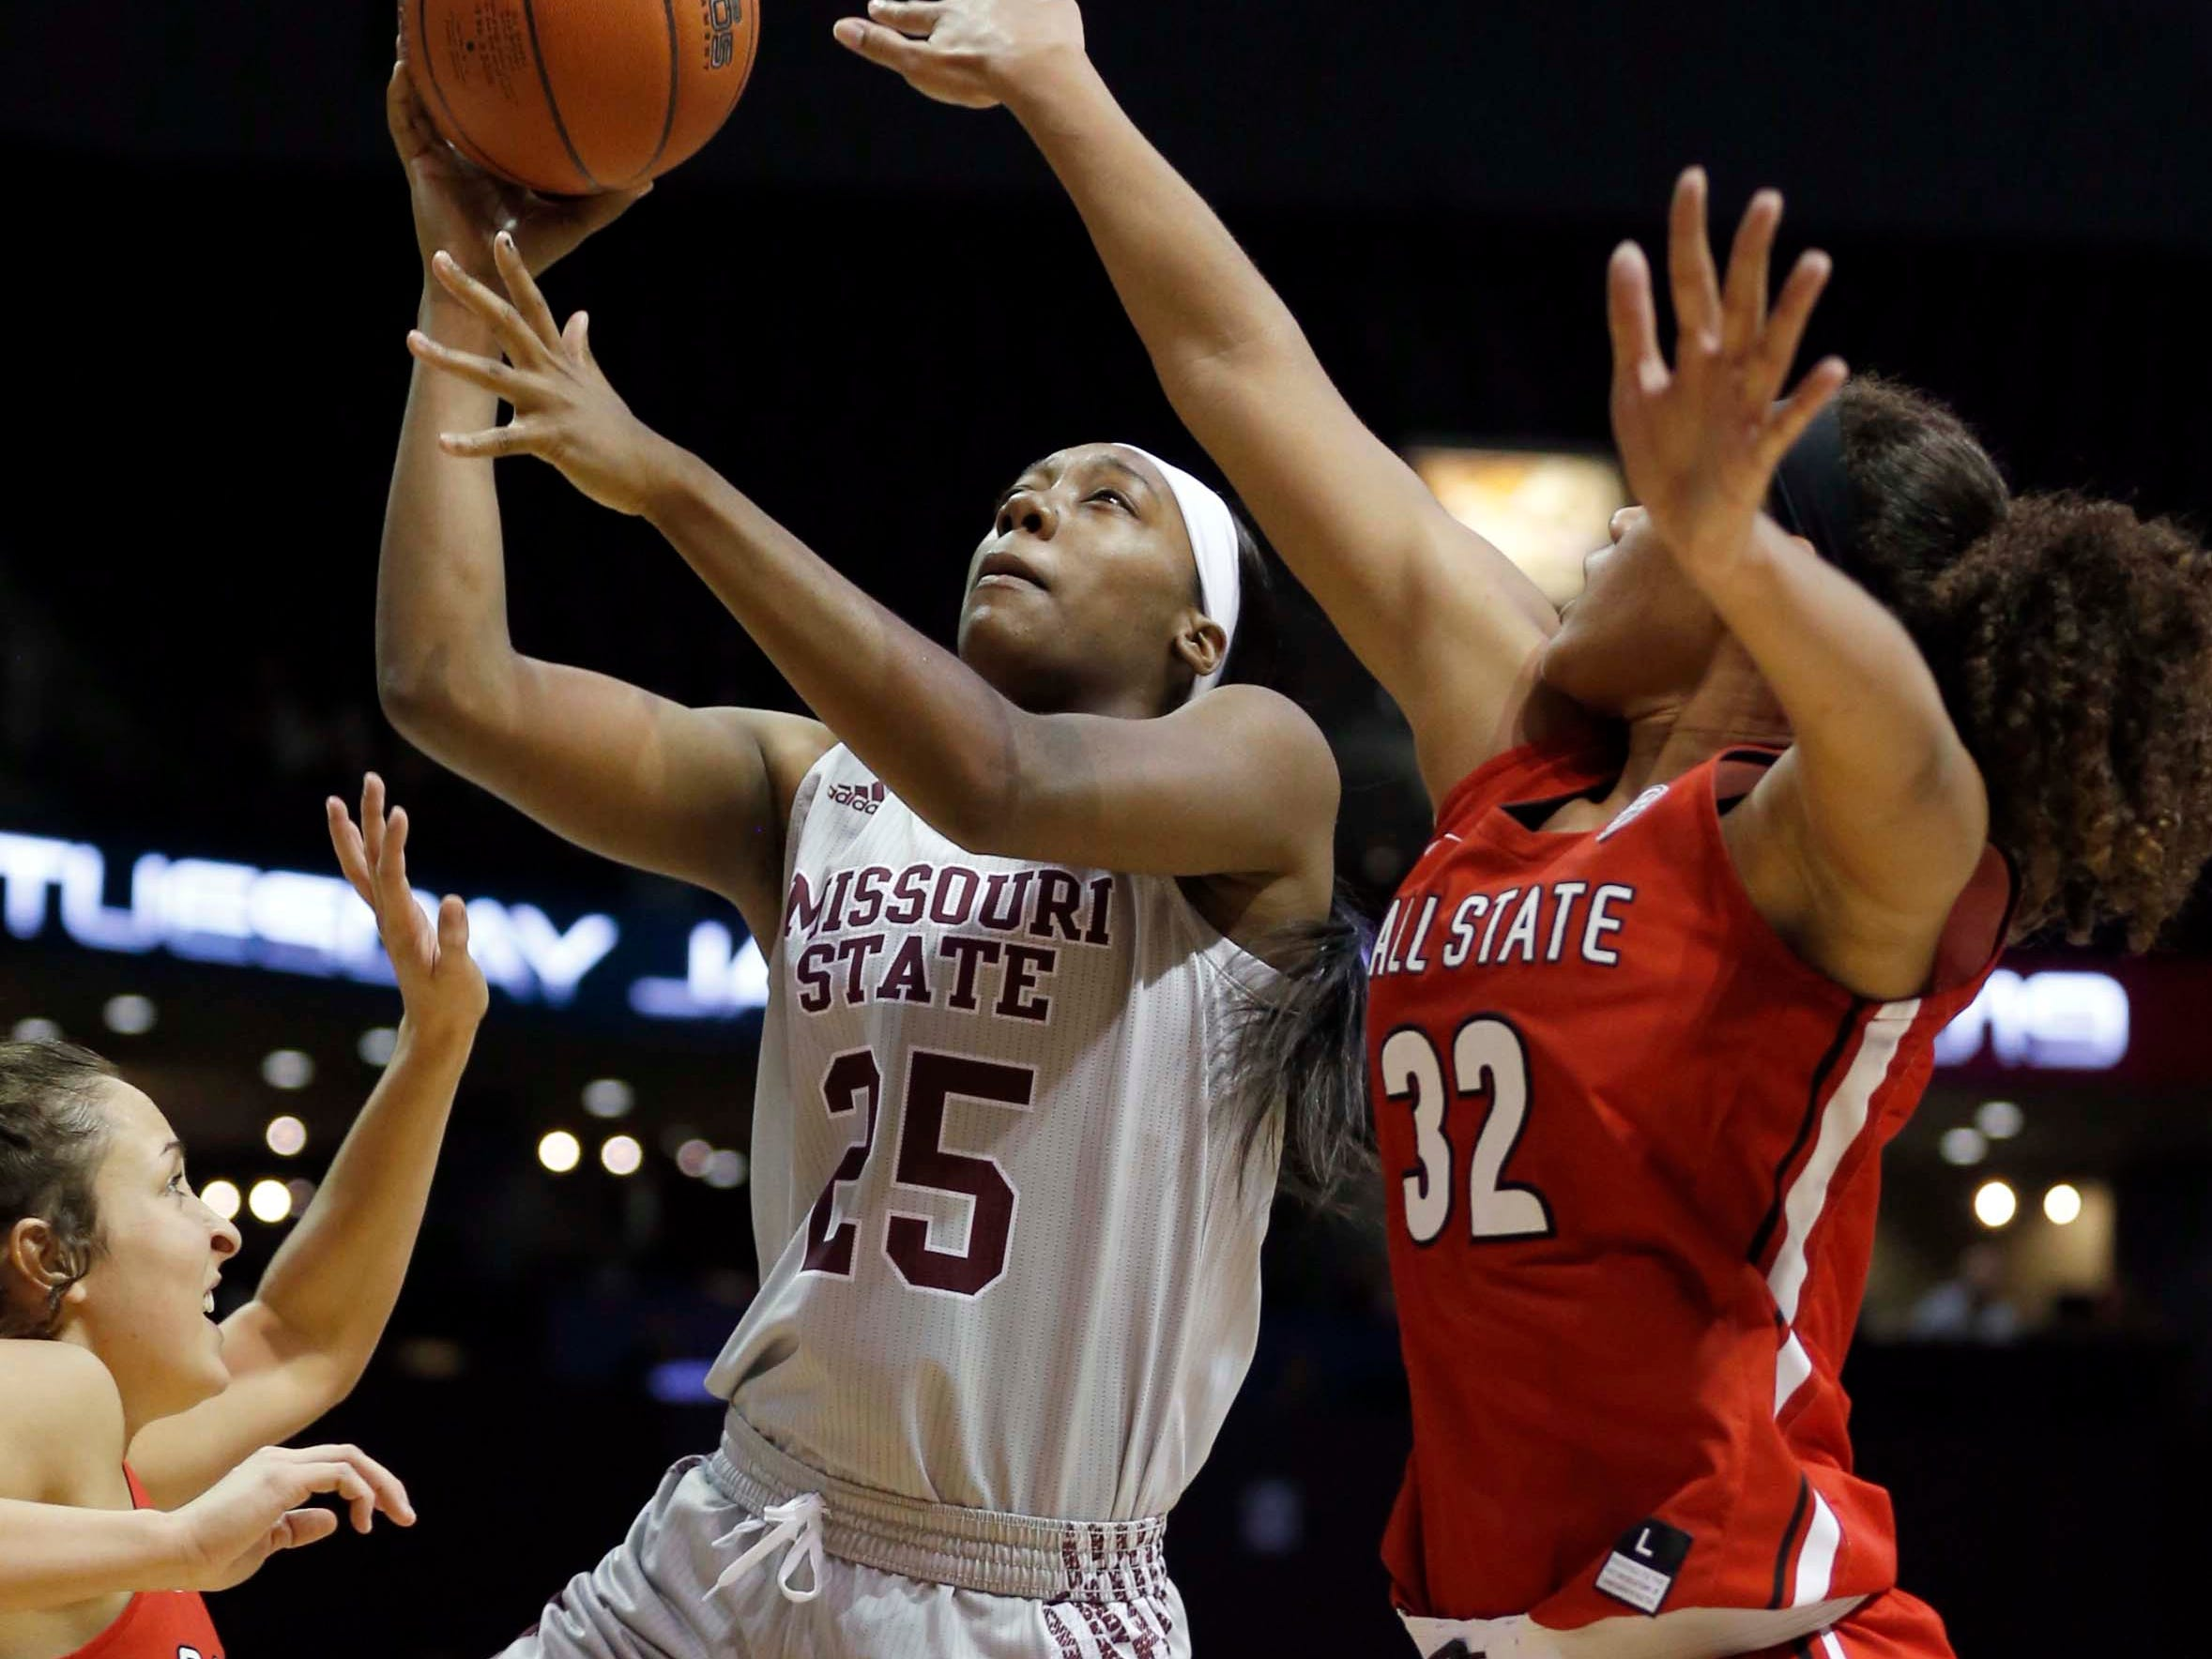 The Missouri State Lady Bears' Dariauna Lewis looks to score against Ball State University at JQH Arena in Springfield on November 17, 2018.